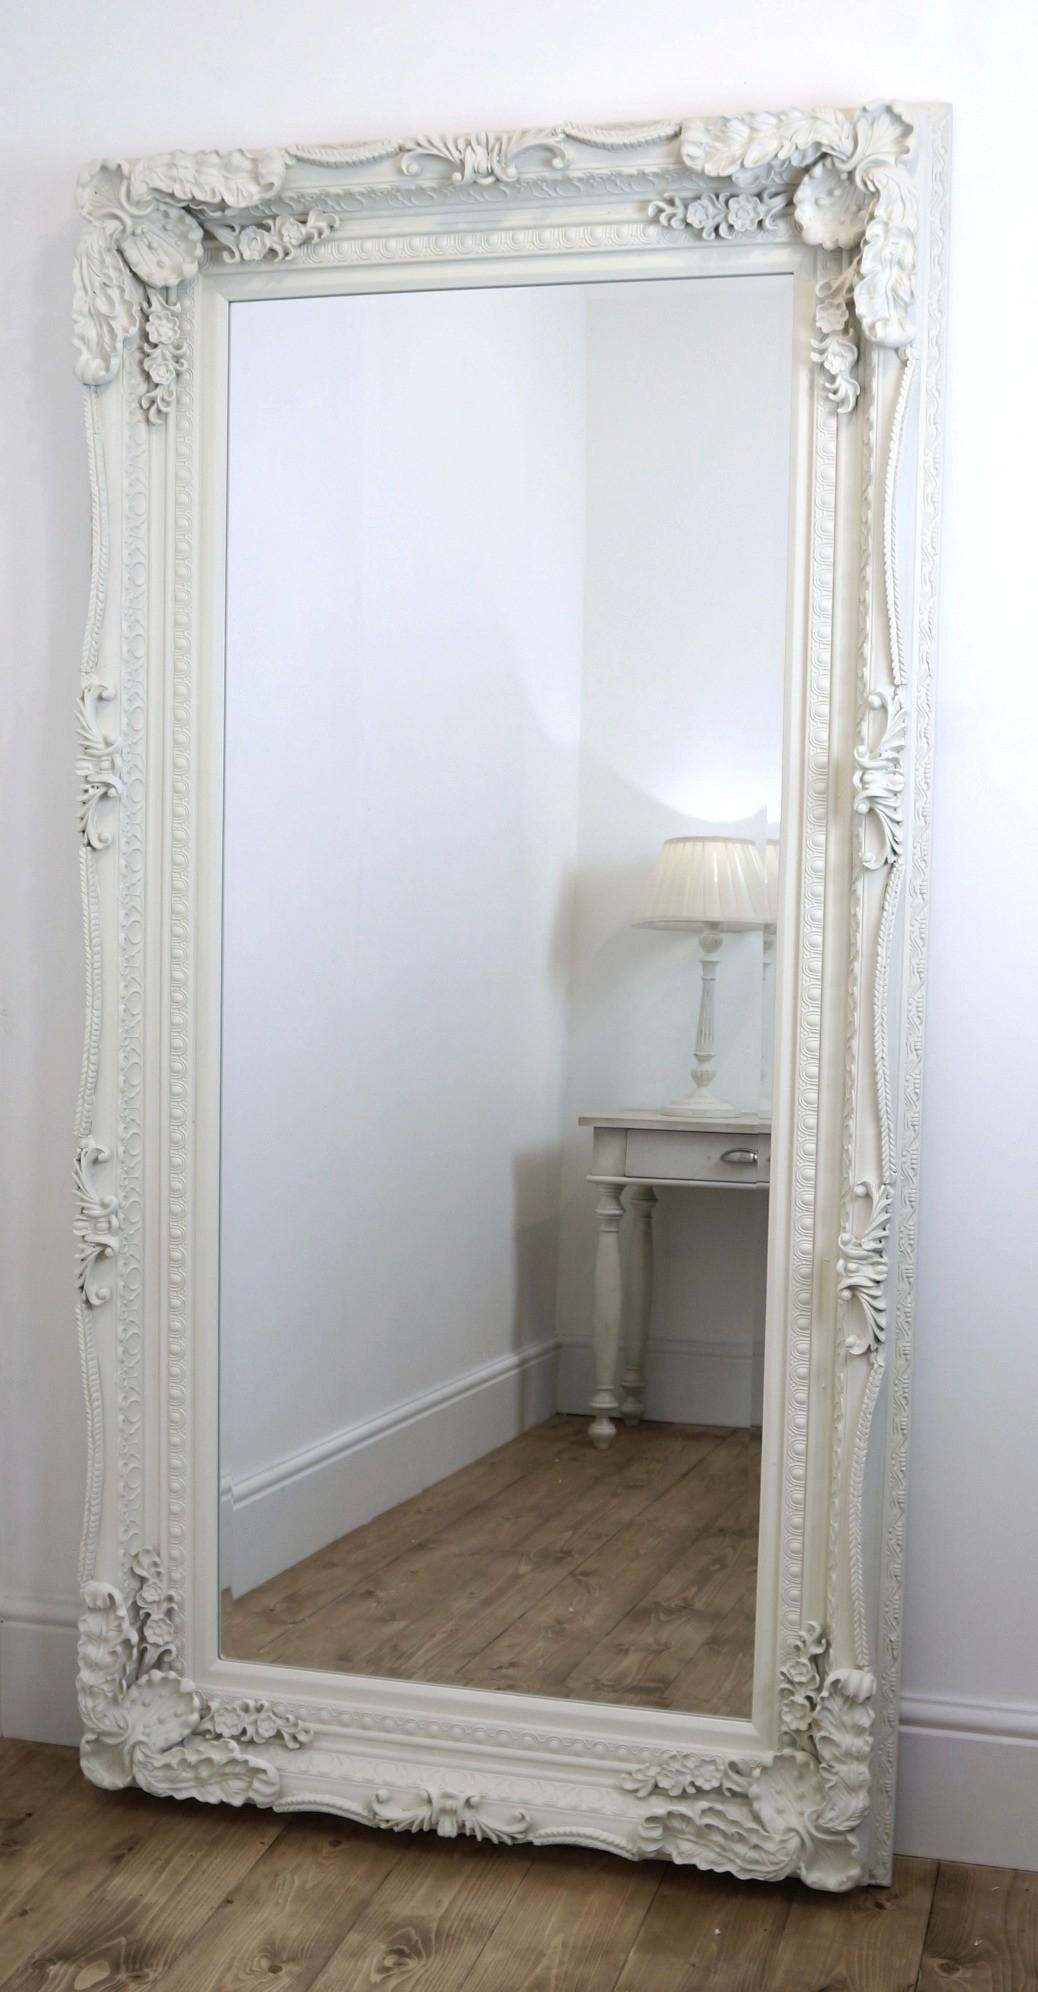 Furniture: Luxury Leaner Mirror For Home Accessories Ideas — Mtyp Intended For Ornate Floor Mirrors (View 11 of 20)